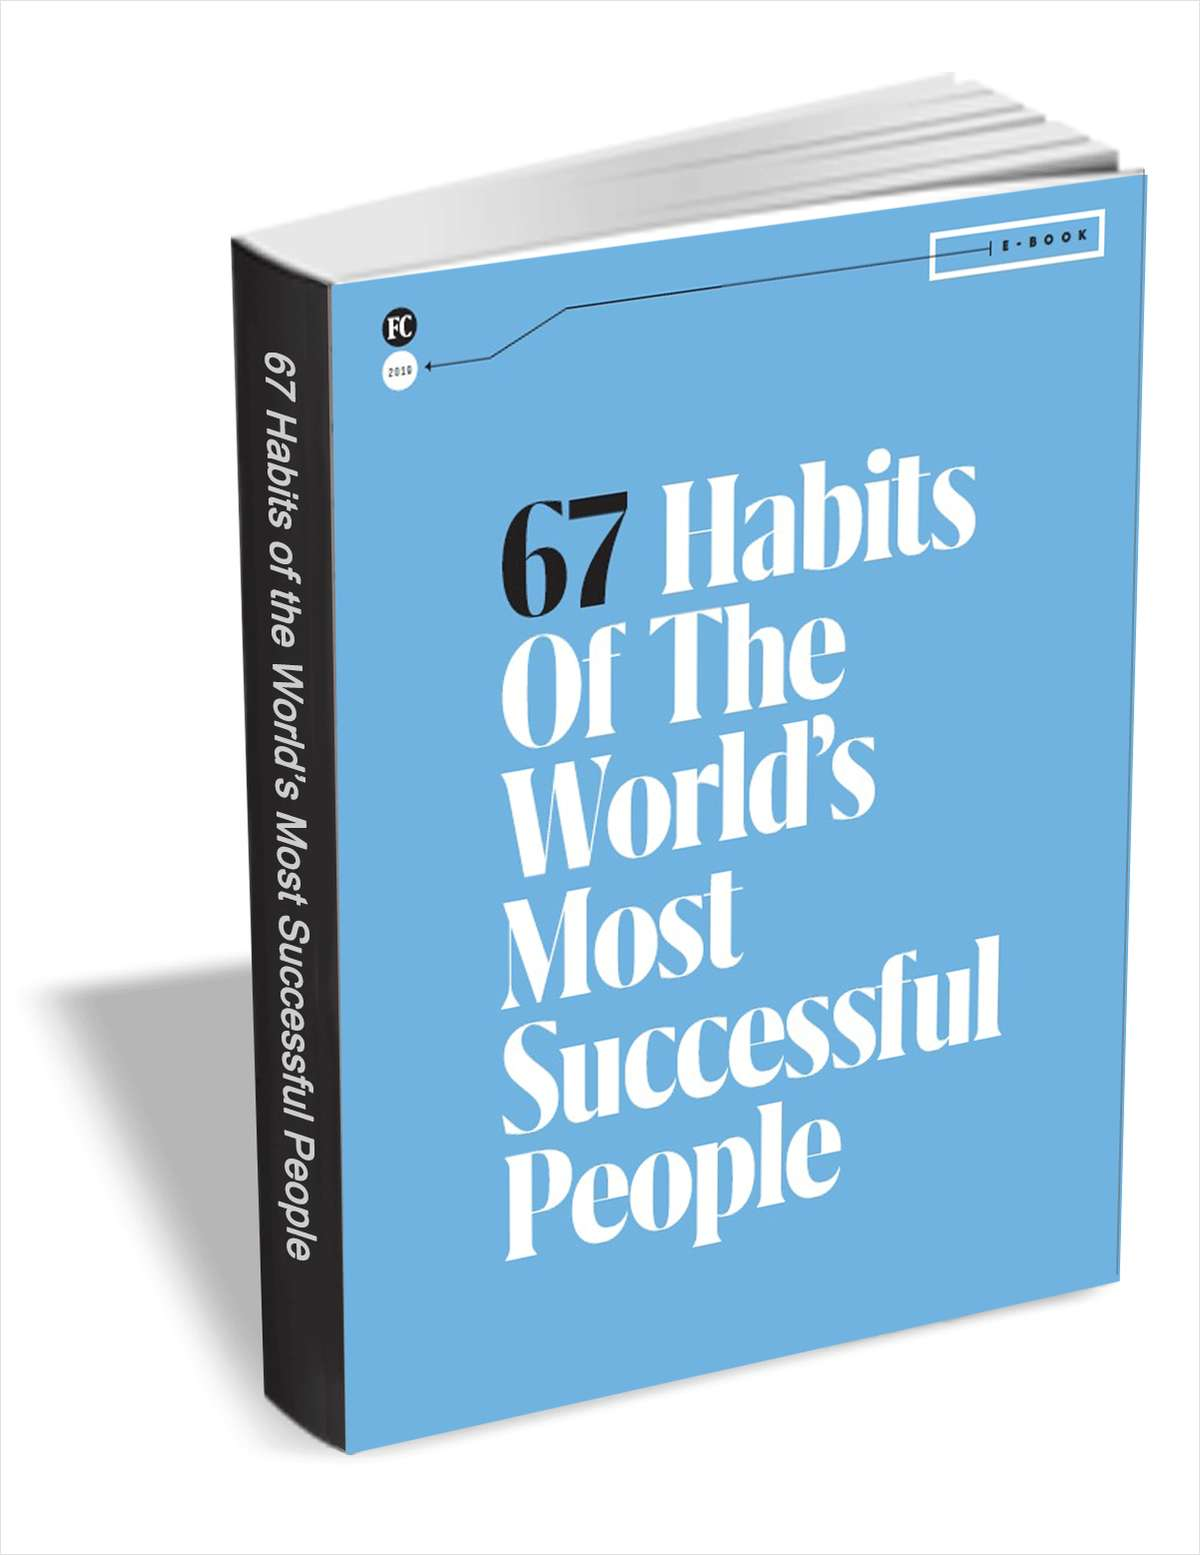 67 Habits of the World's Most Successful People